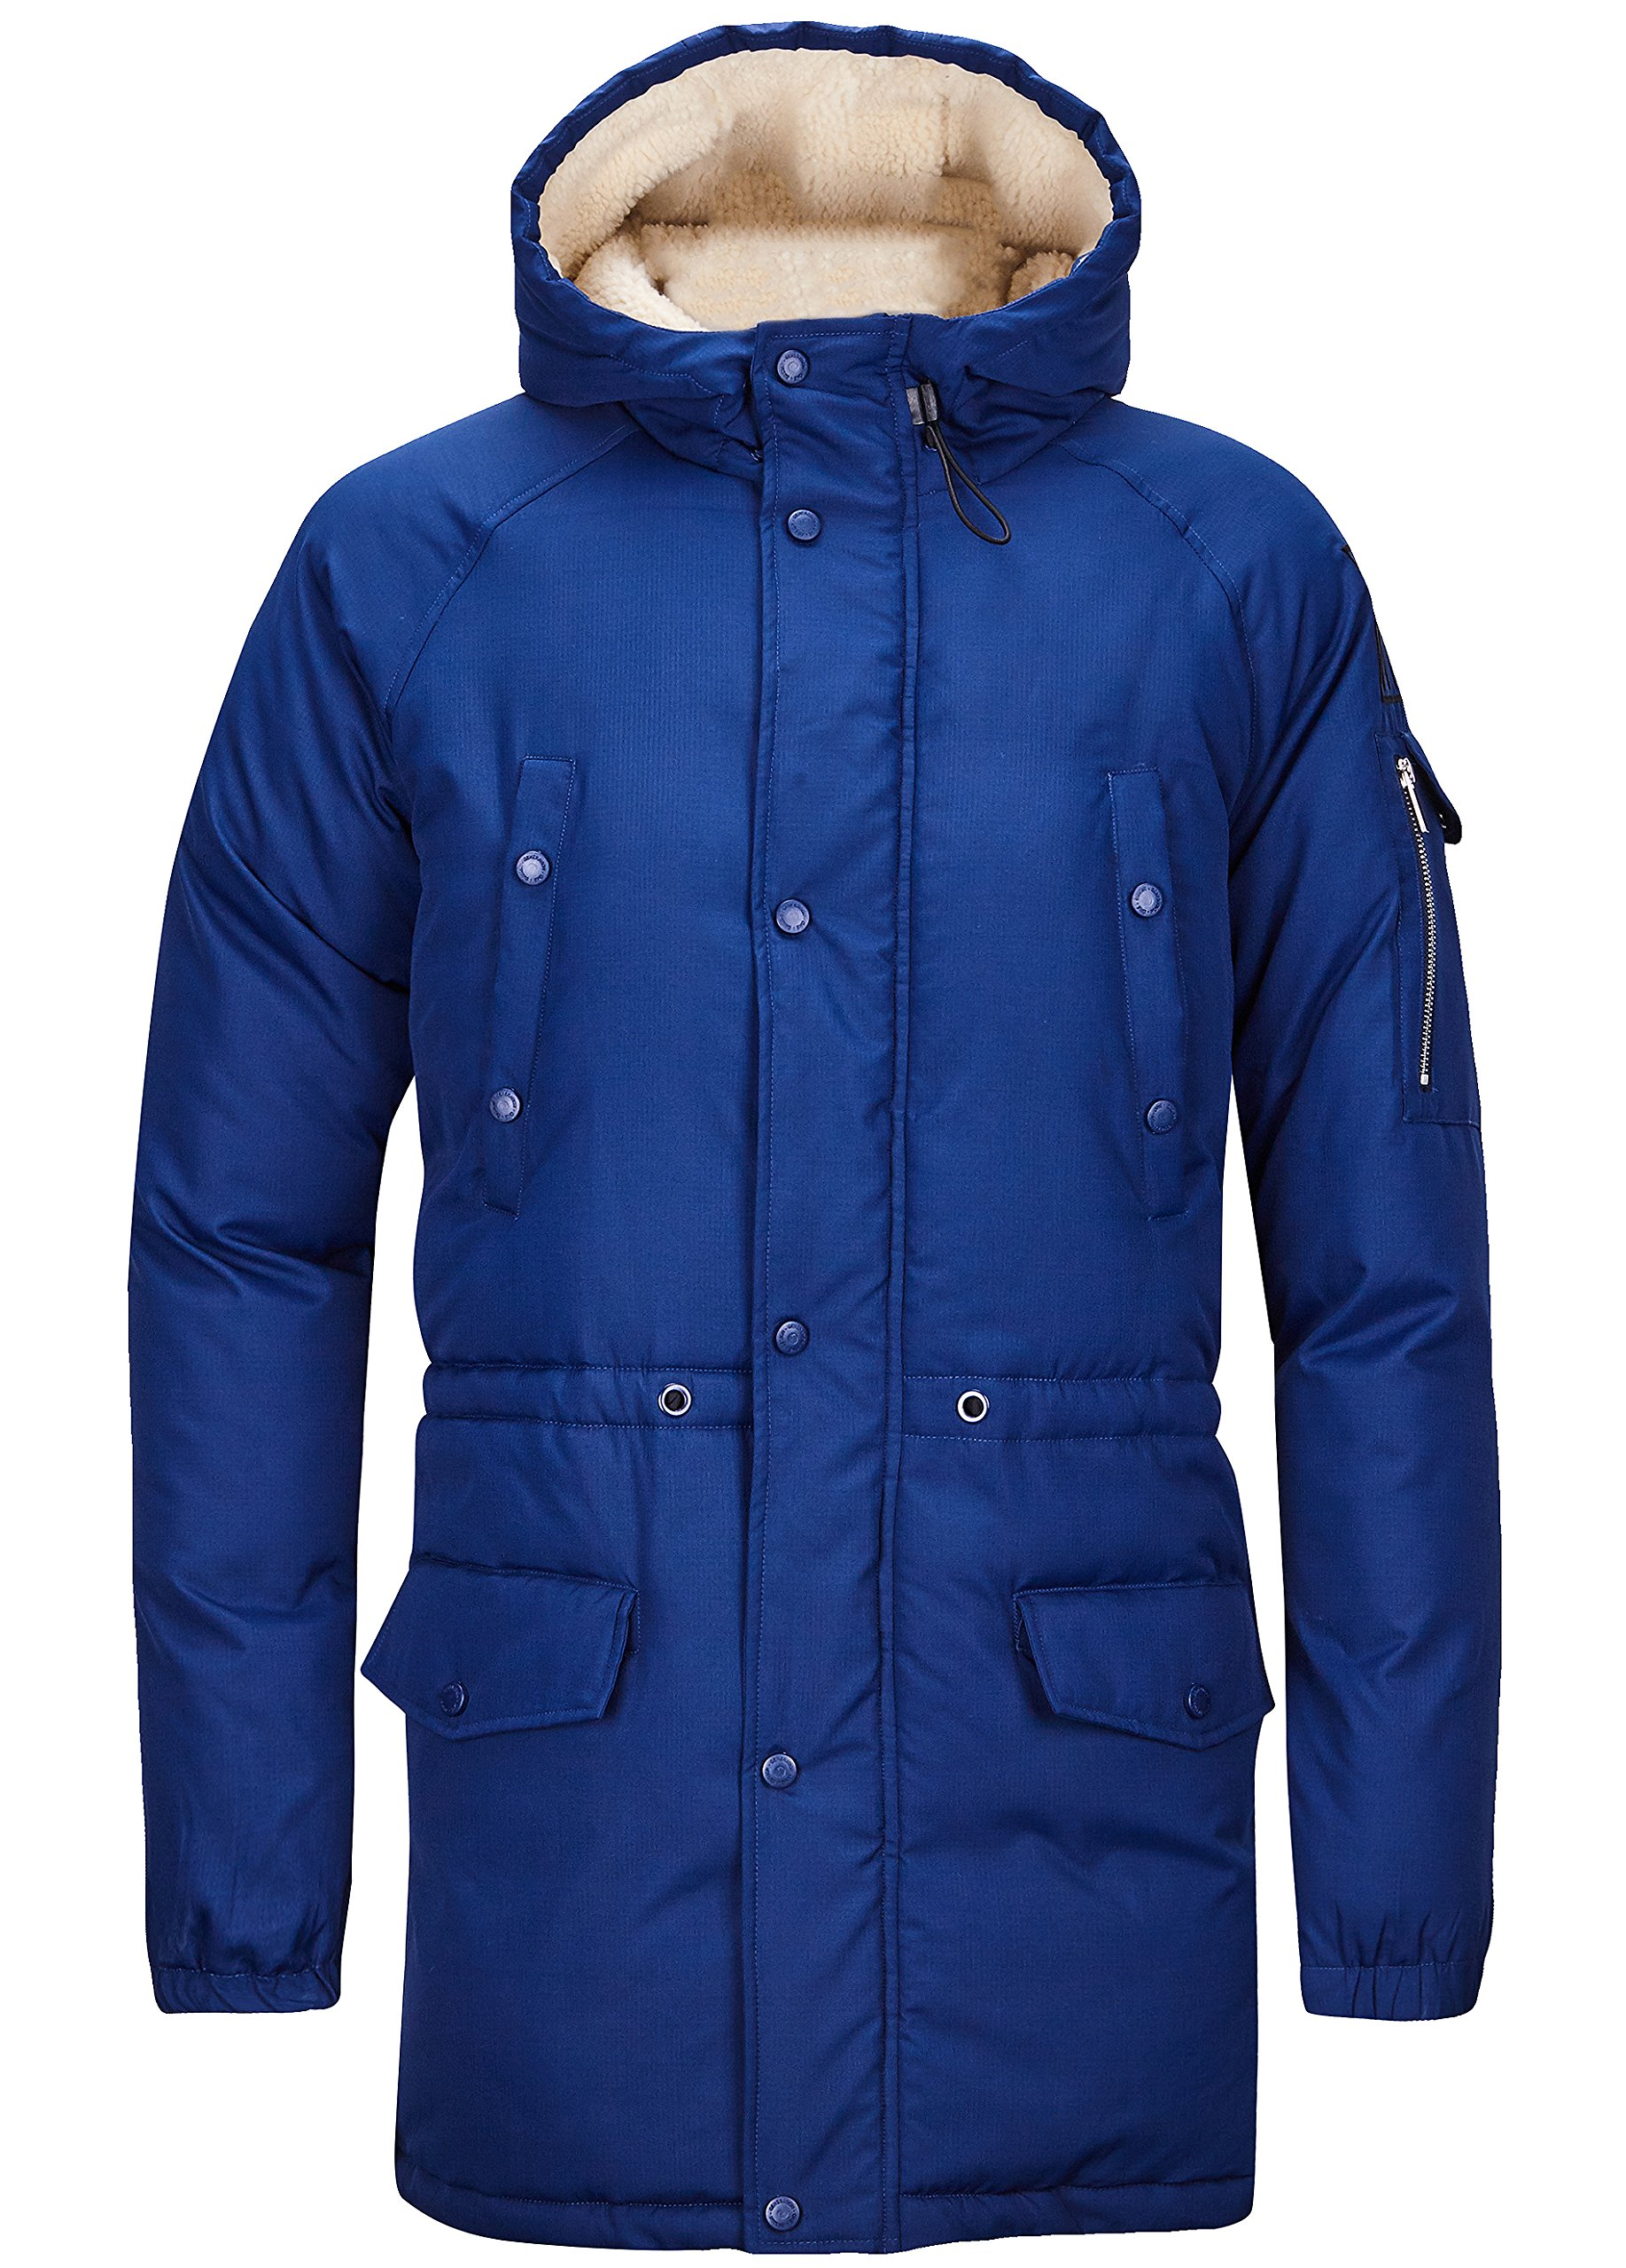 SWISSWELL Parka Jacket for Men Winter Thicken Cotton Jacket with Sherpa Hood Navy S